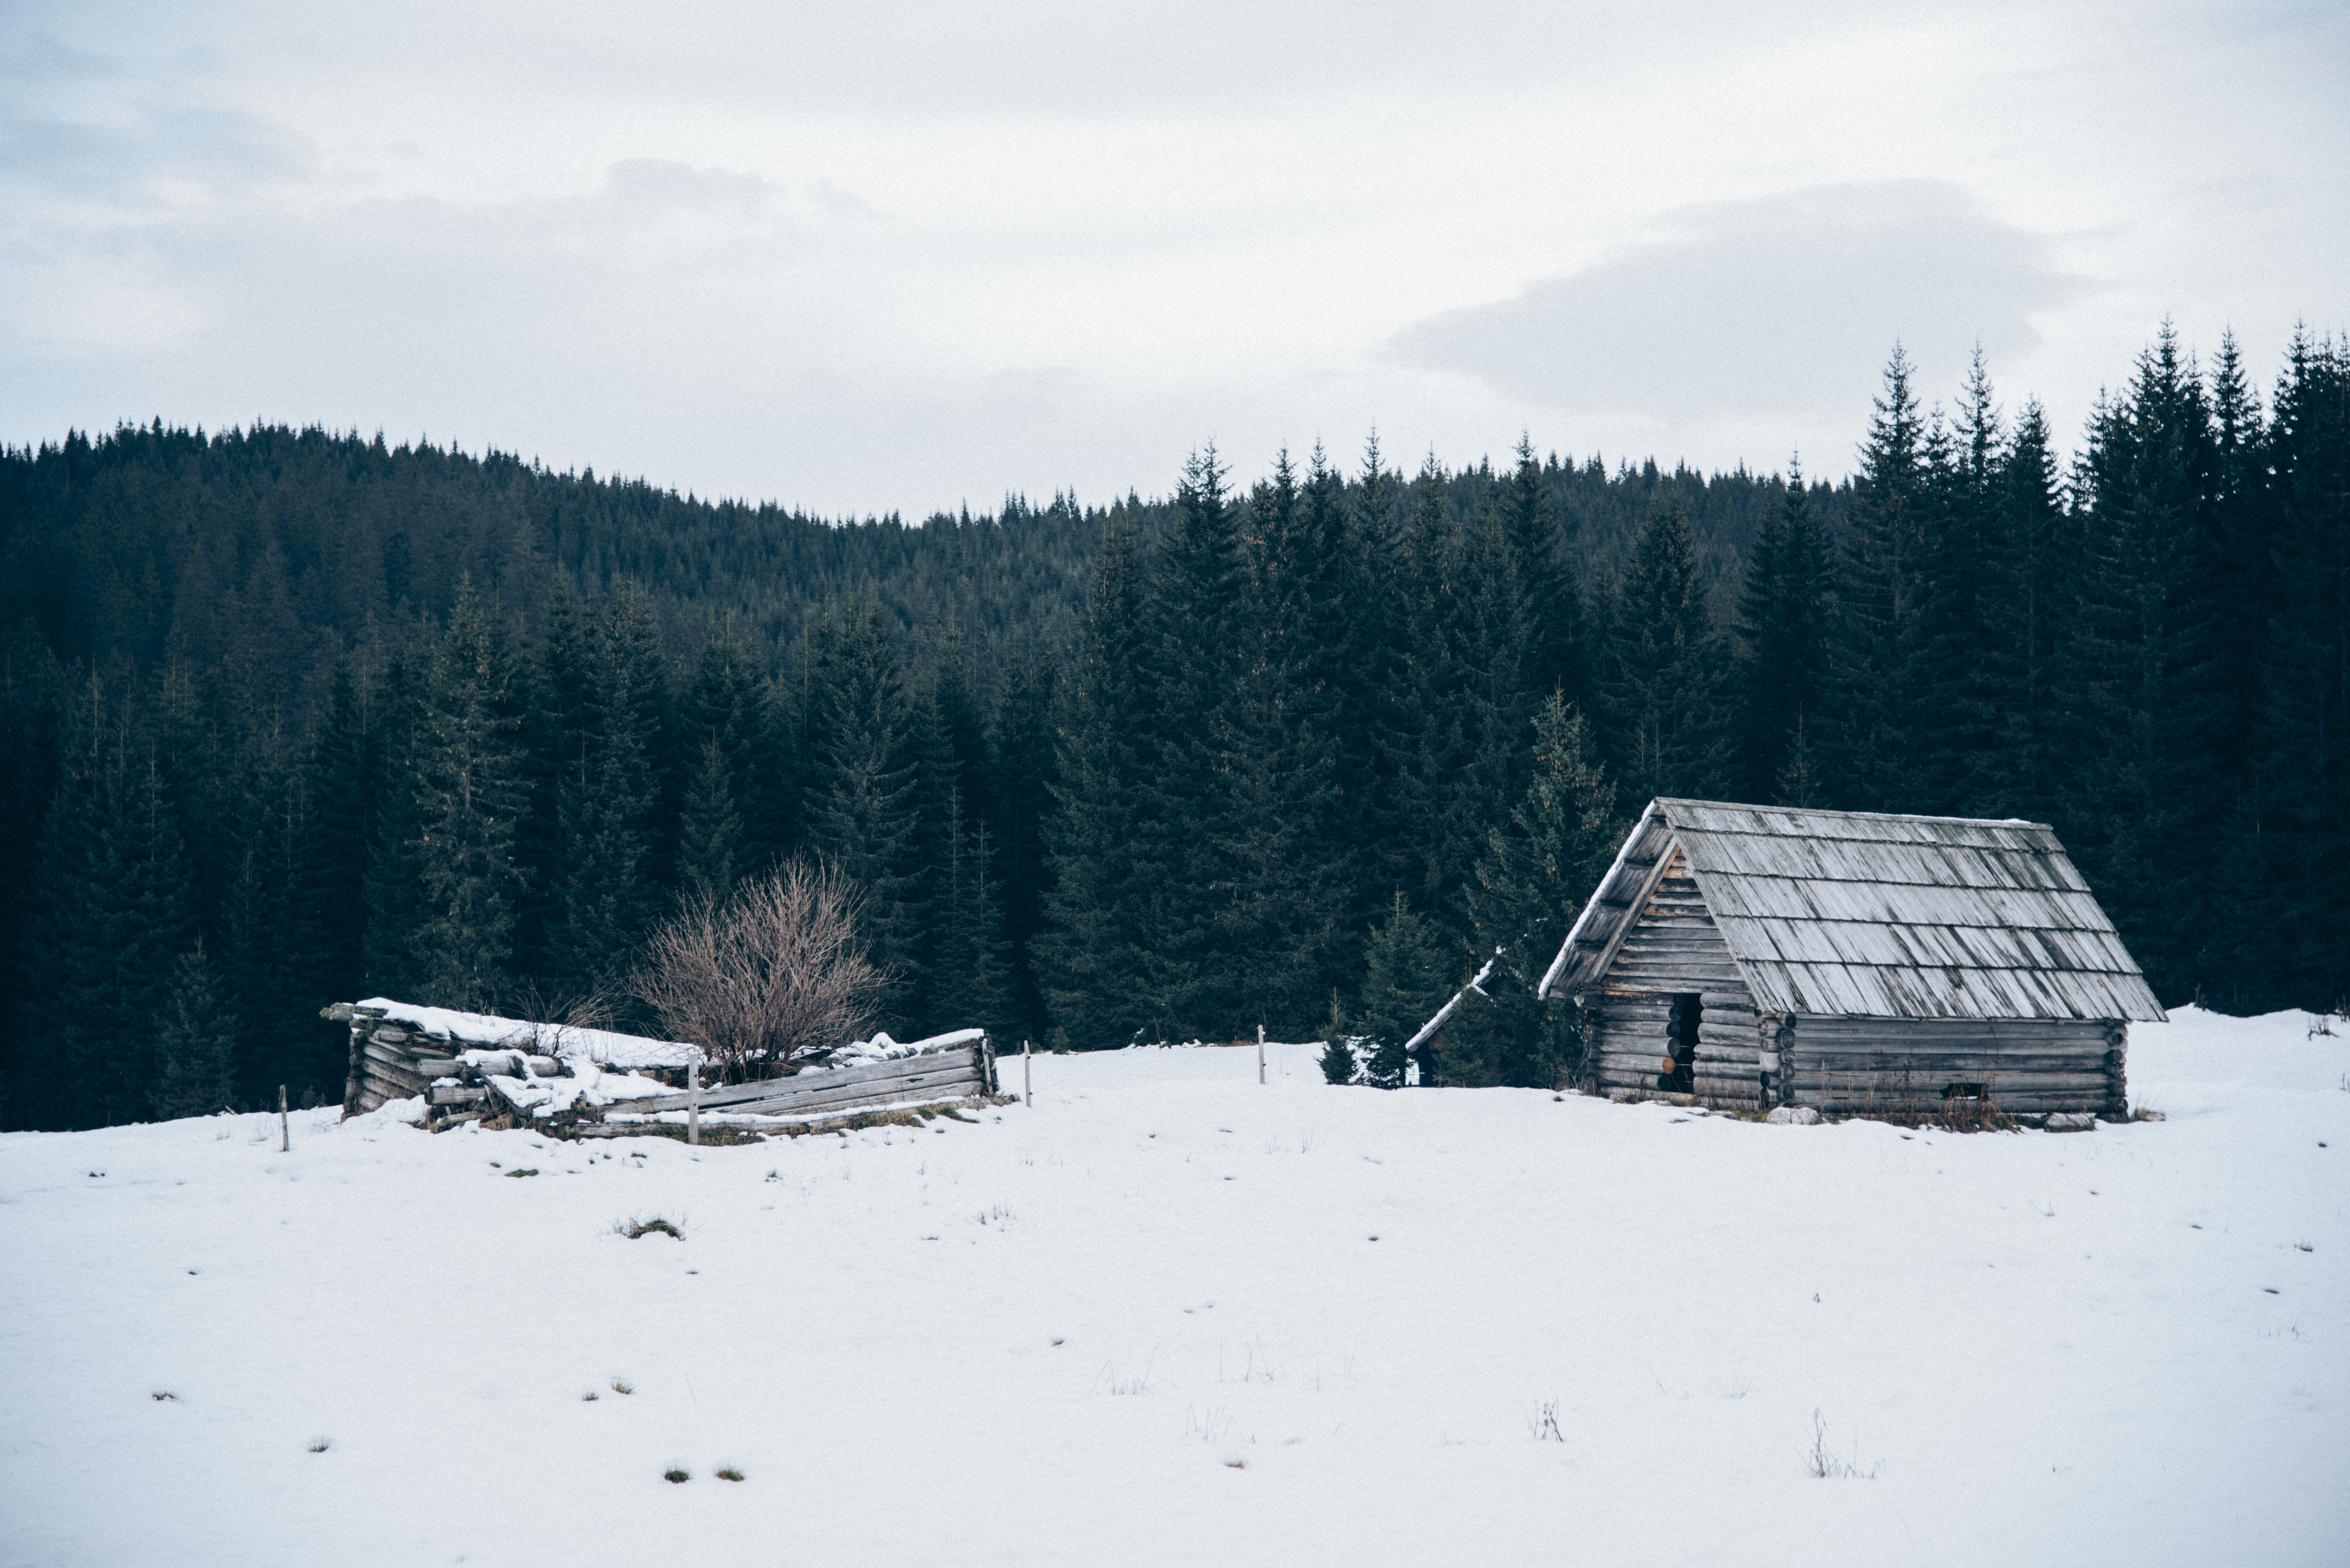 Old Cabin in Winter, Abandoned, Cabin, Forest, Green, HQ Photo